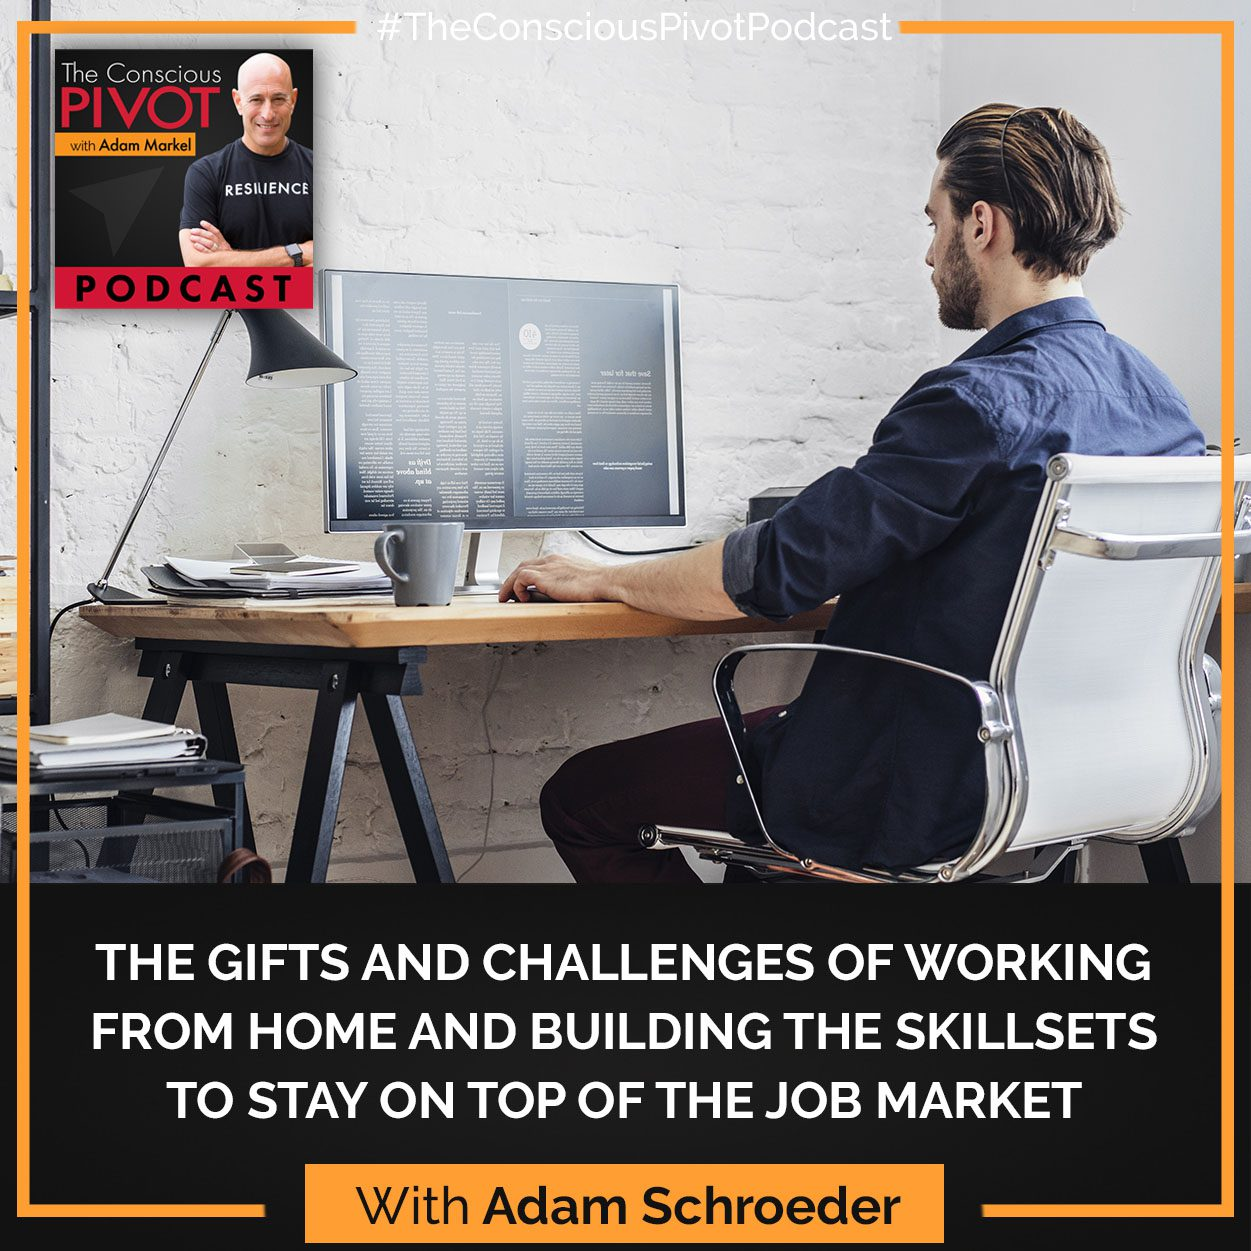 The Gifts And Challenges Of Working From Home And Building The Skillsets To Stay On Top Of The Job Market With Adam Schroeder